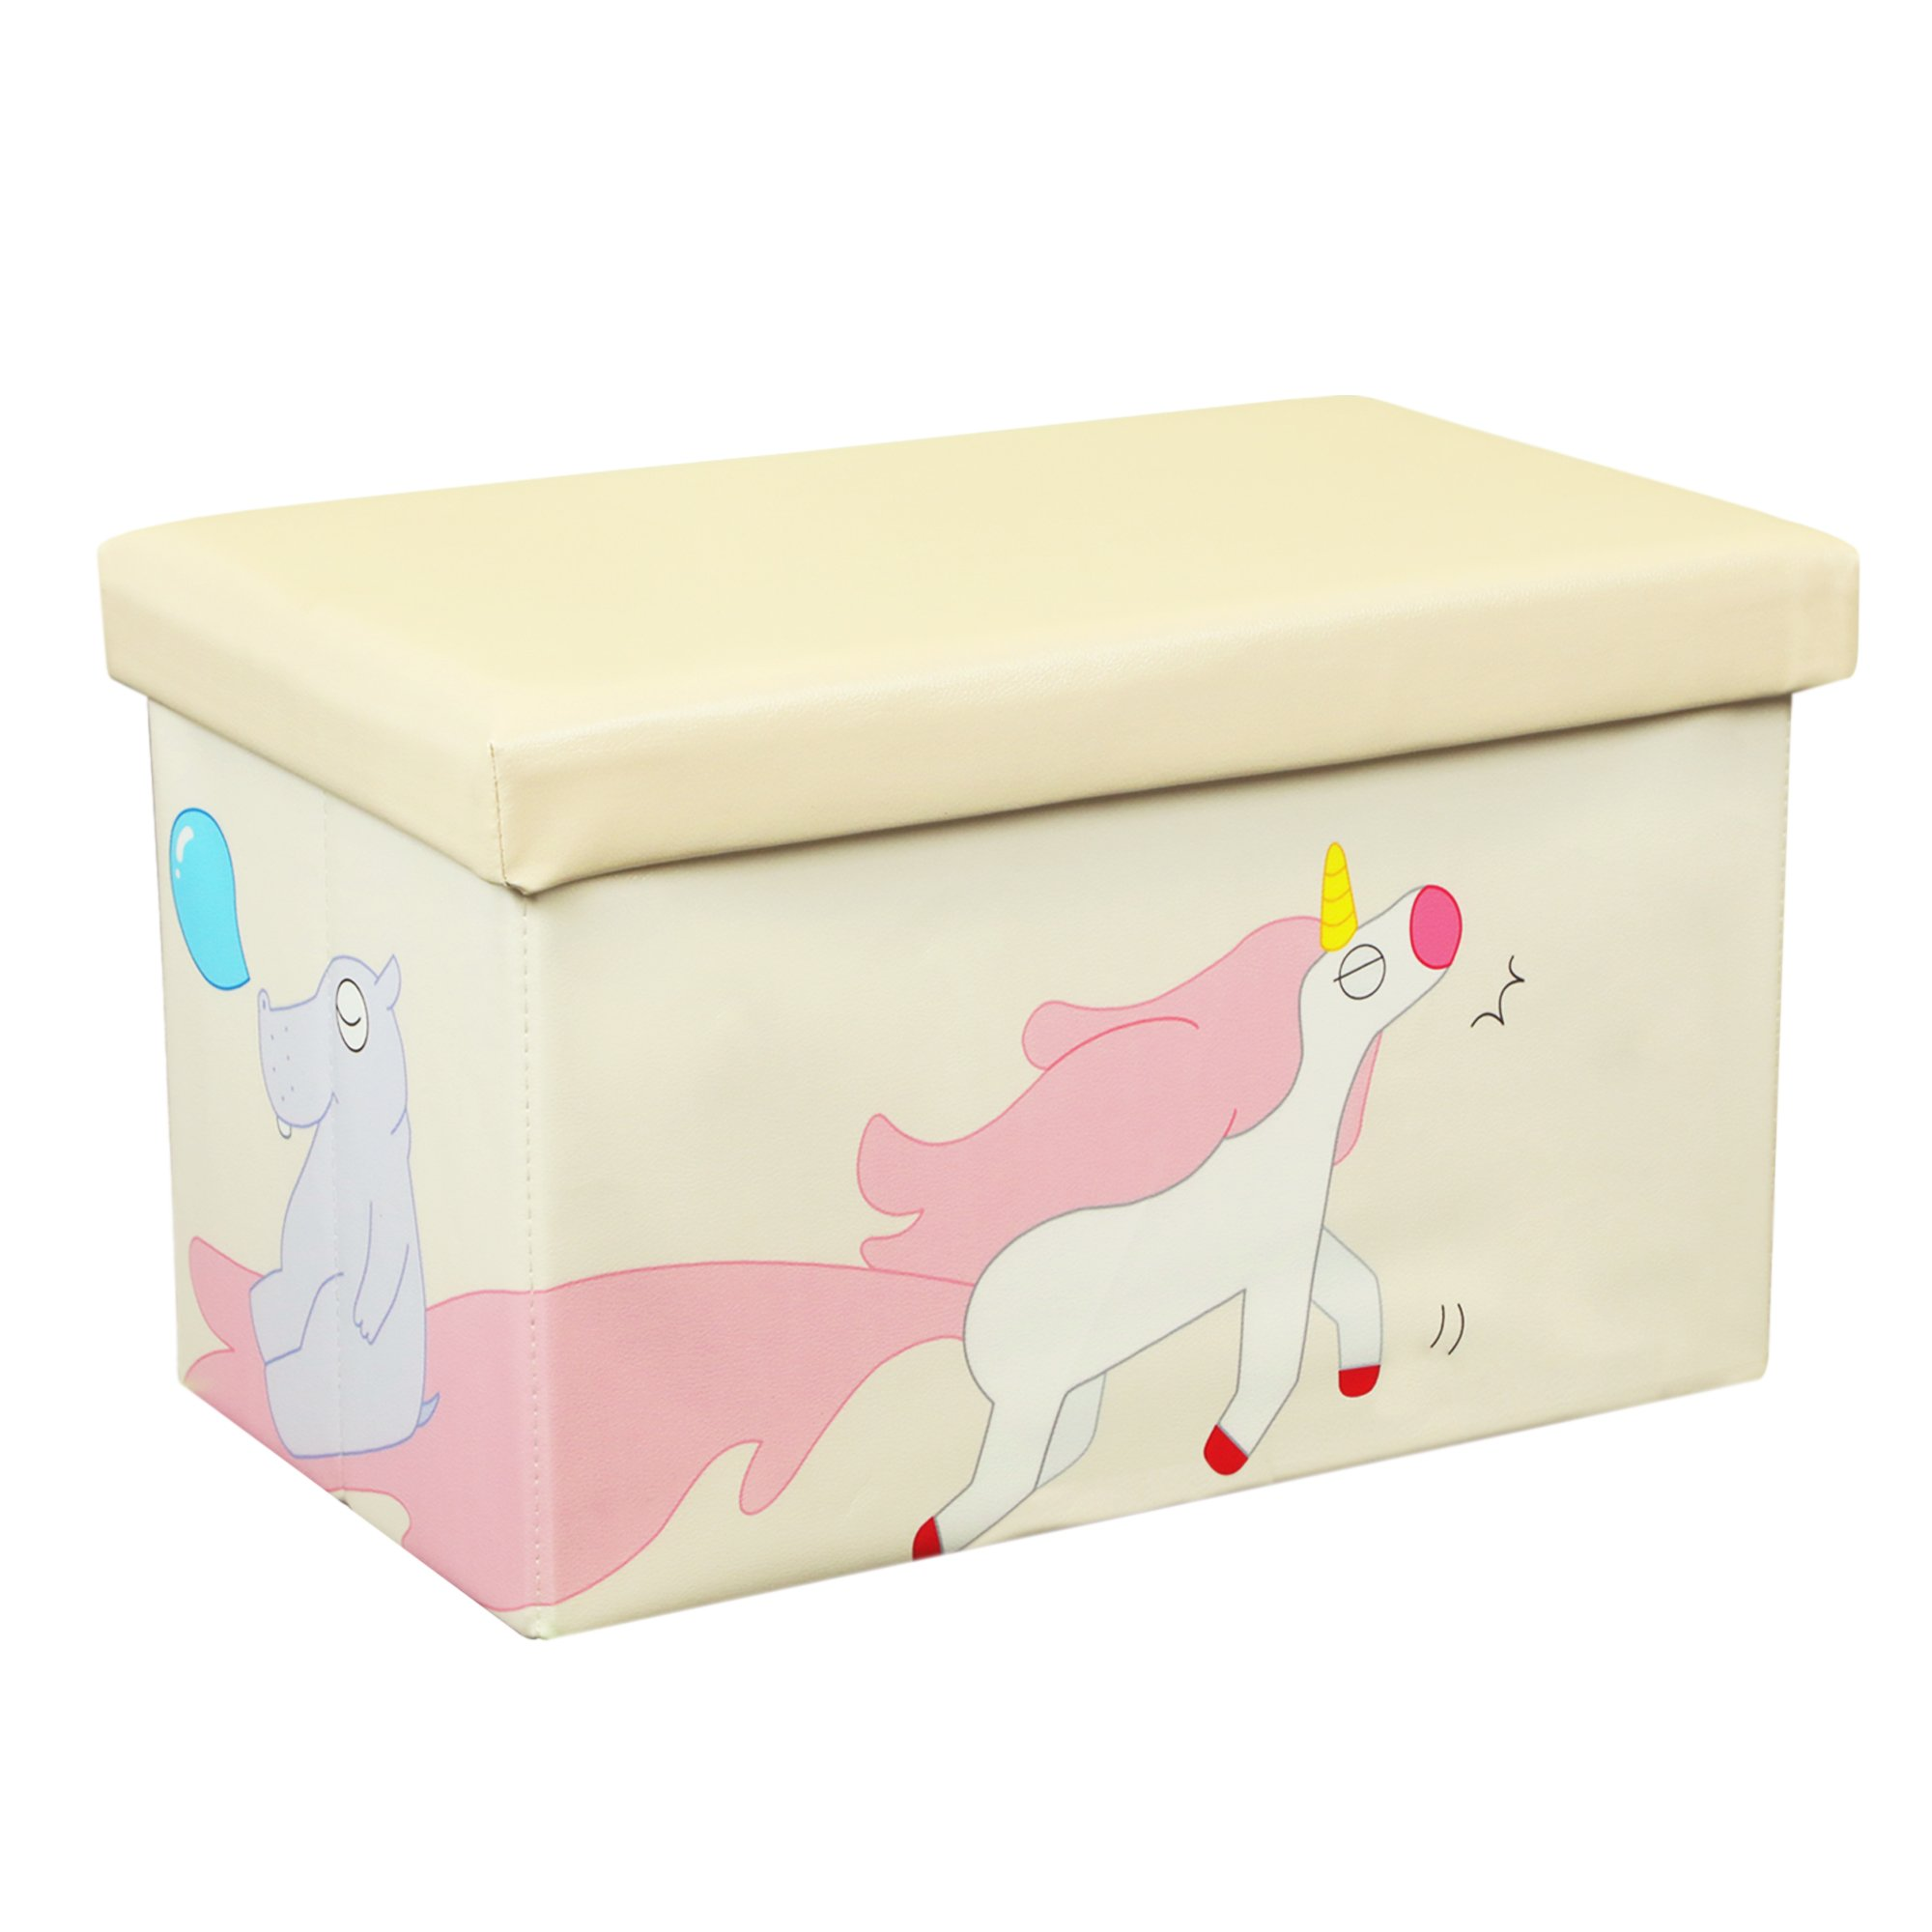 Otto & Ben 23'' Toy Box - Folding Storage Ottoman Chest with Foam Cushion Seat, Washable Faux Leather Foot Rest Stools for Kids, Unicorn and Hippo